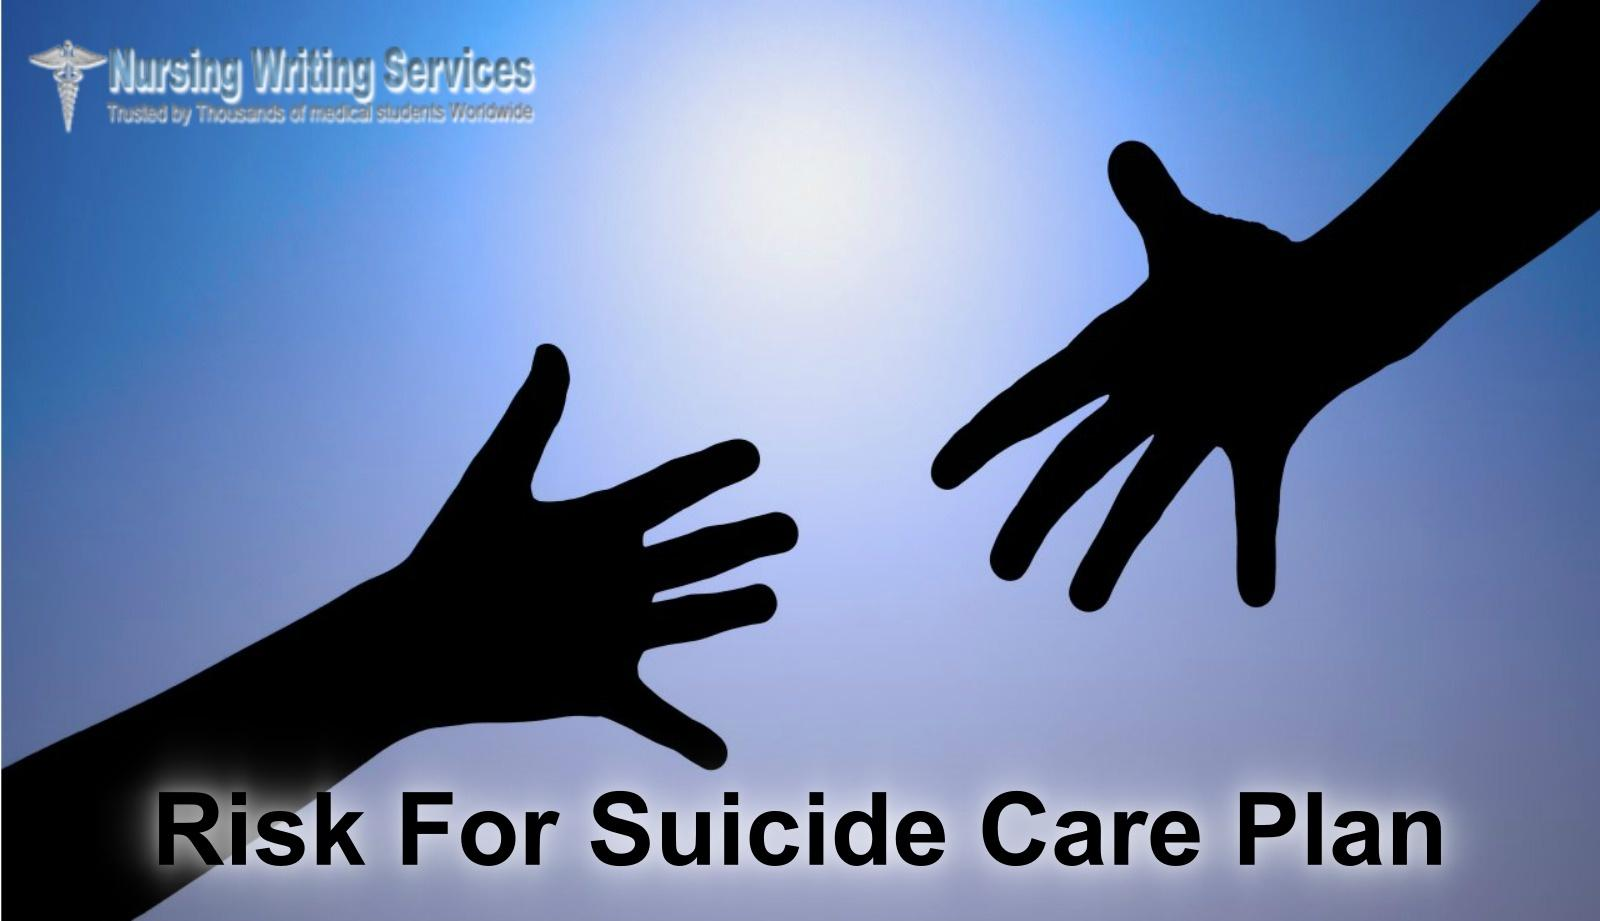 Risk For Suicide Care Plan Writing Services